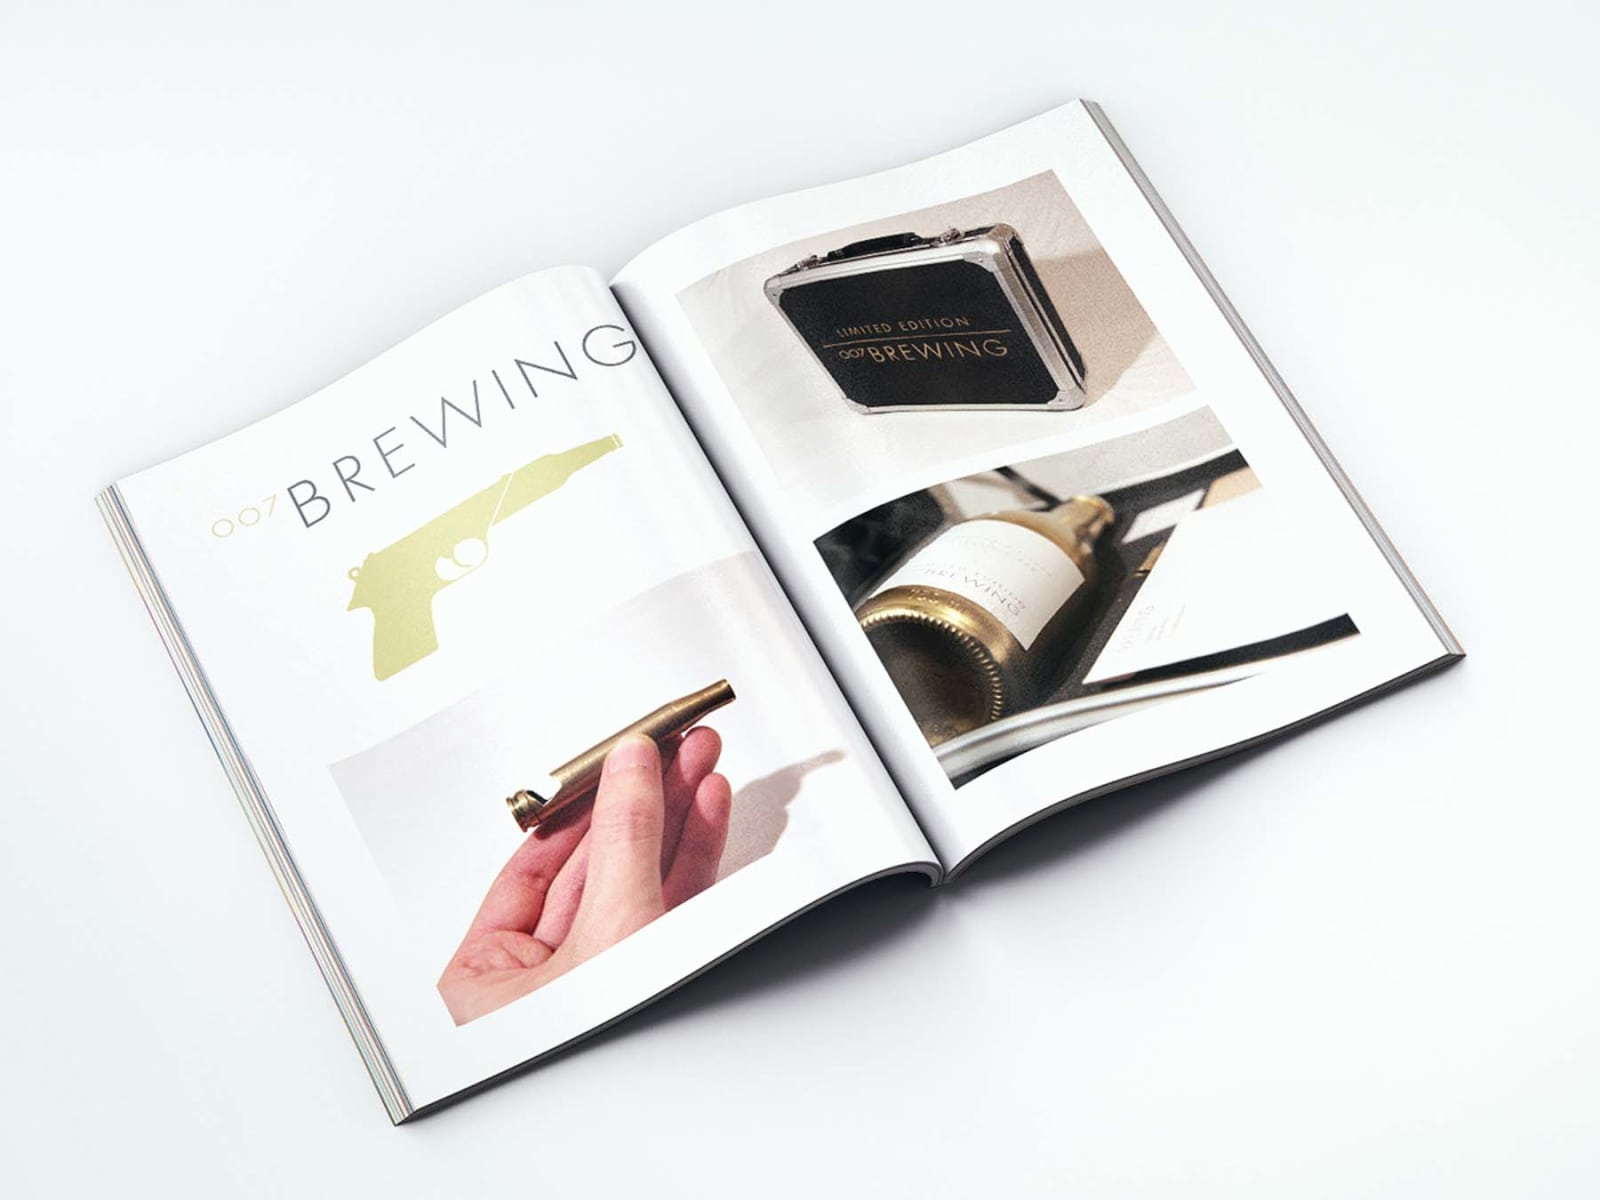 Portfolio Booklet 007 Brewing 2